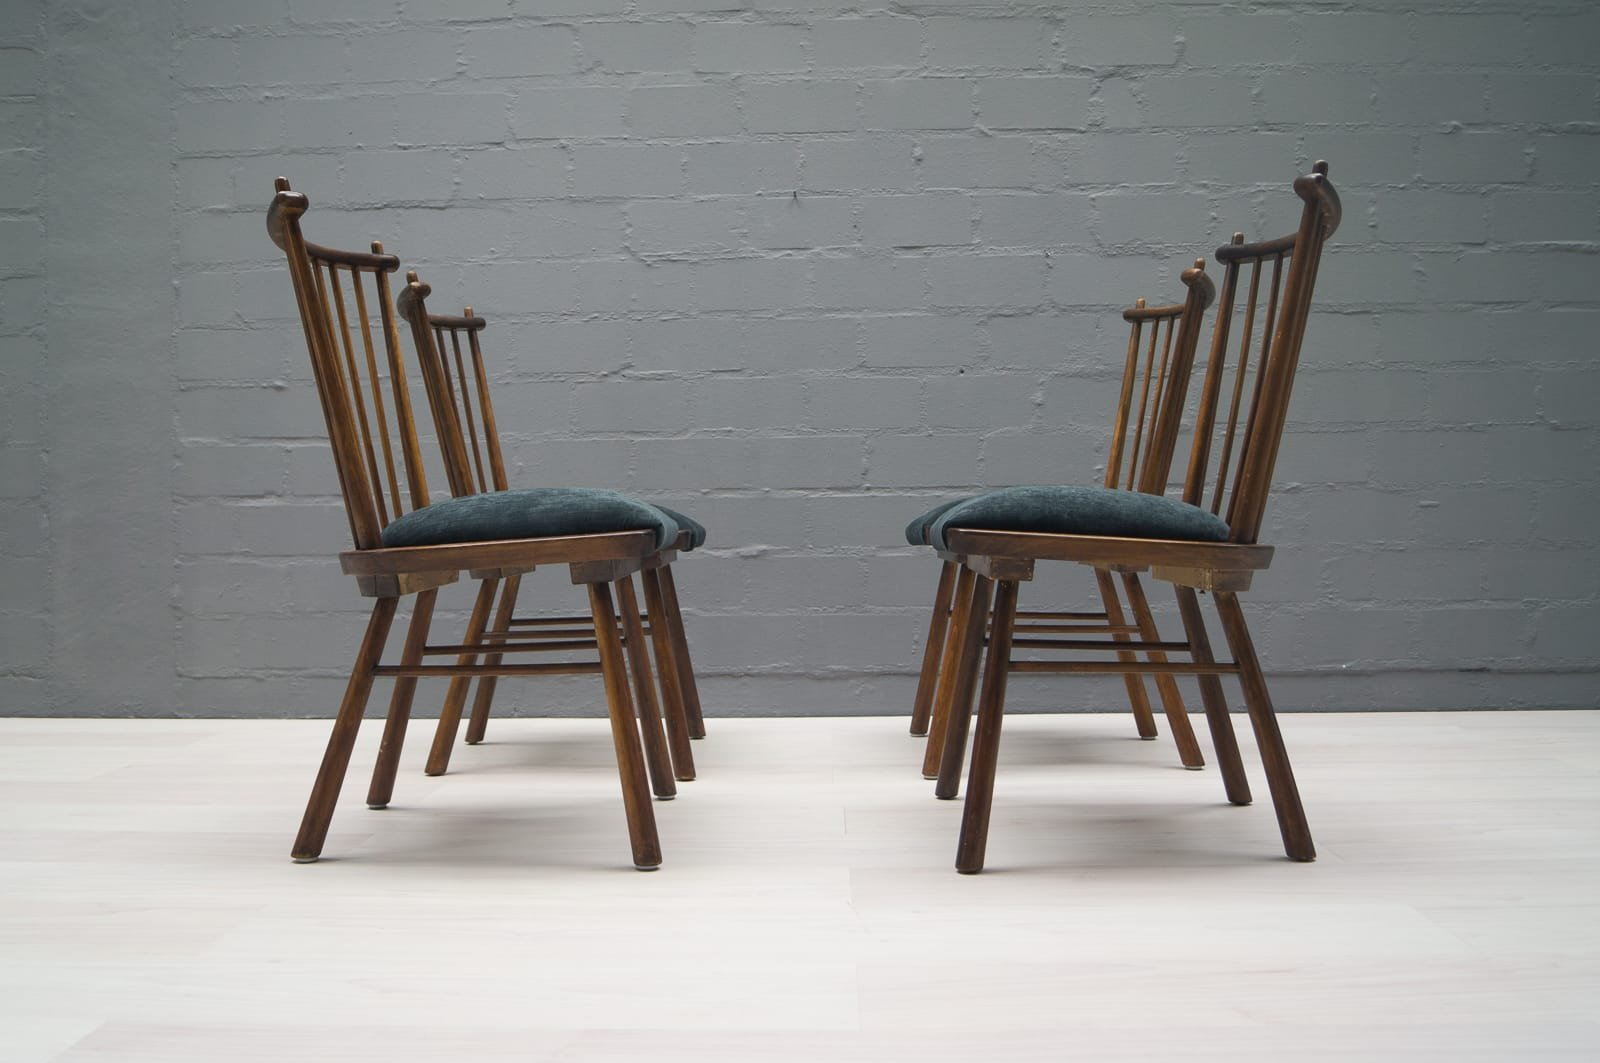 Vintage Wooden Dining Chairs, 1950s, Set of 4 for sale at Pamono